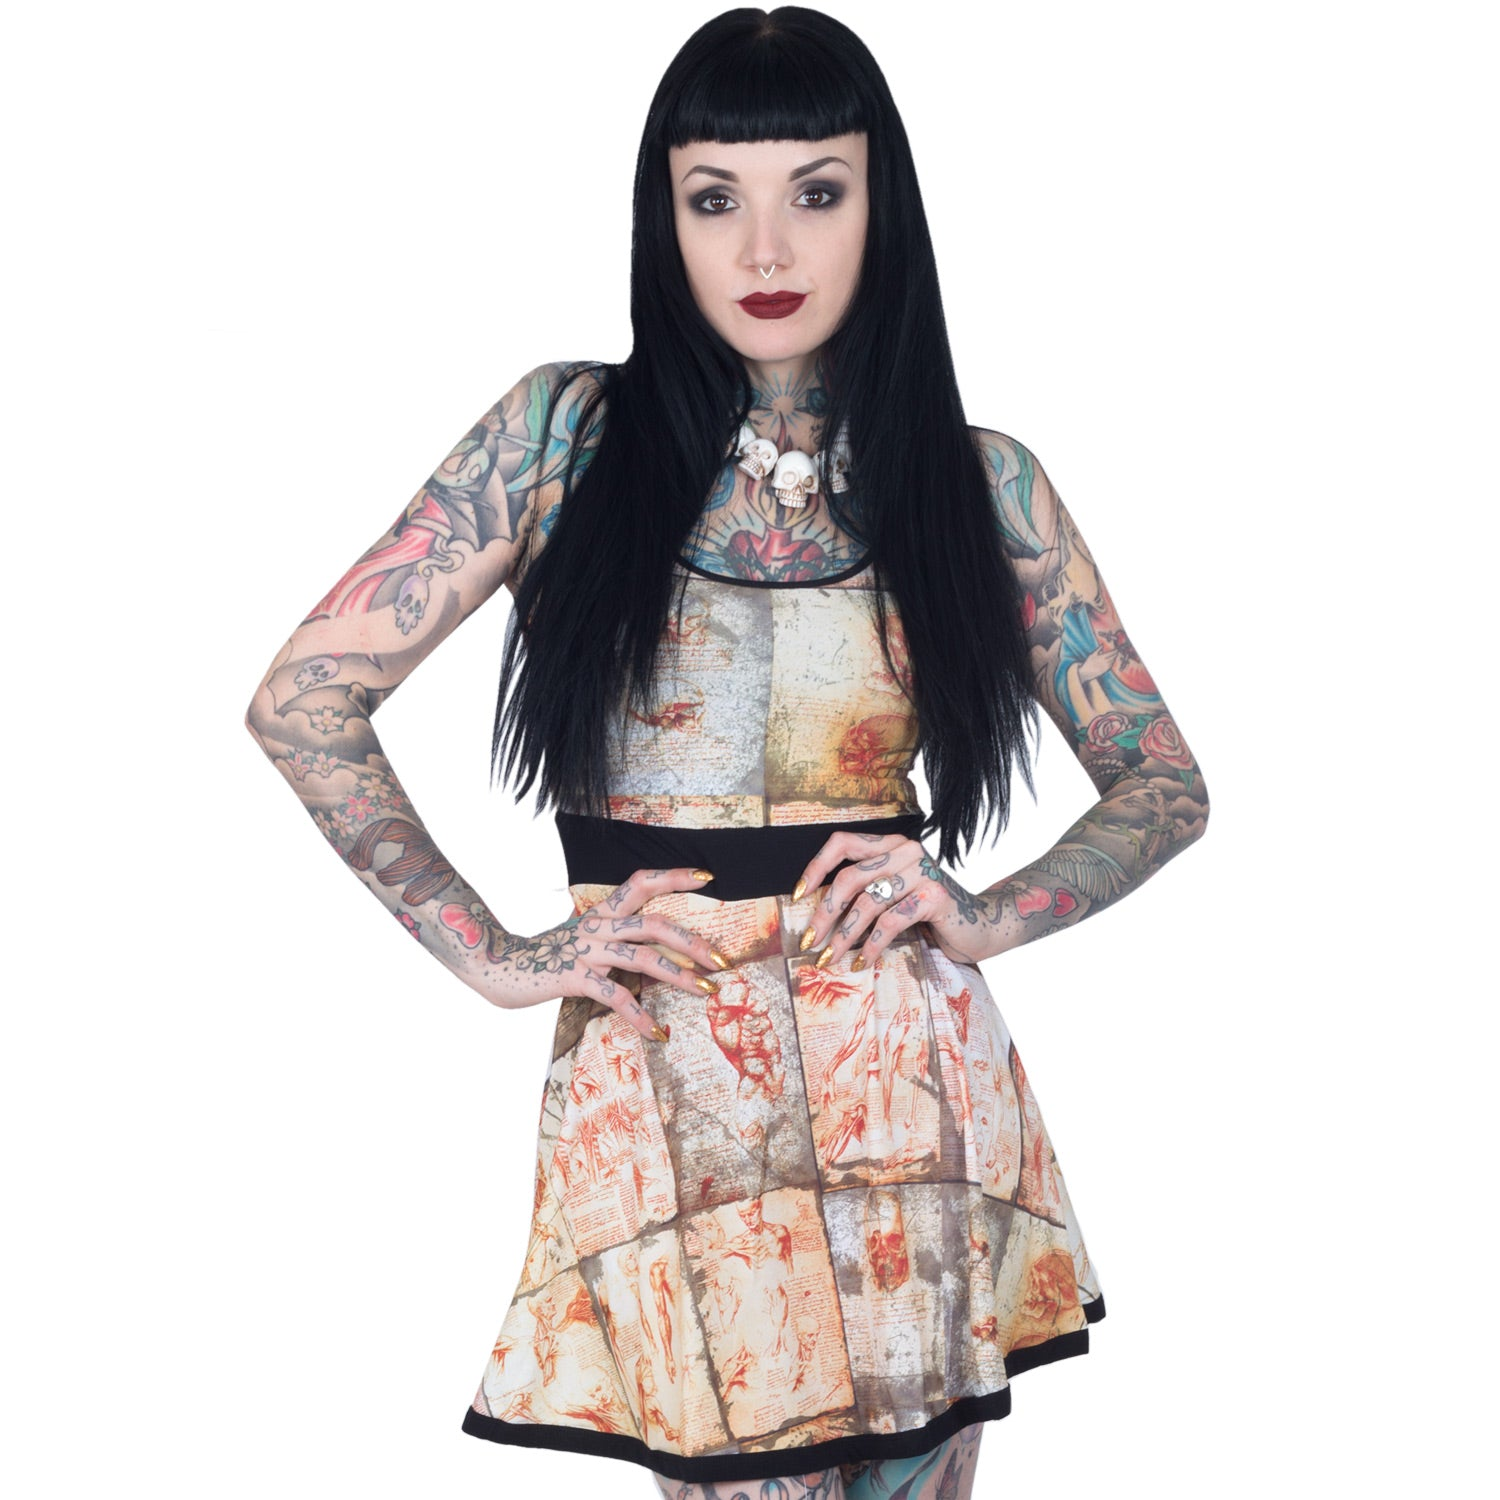 kreepsville 666 anatomy notes penny dress – Kreepsville 666